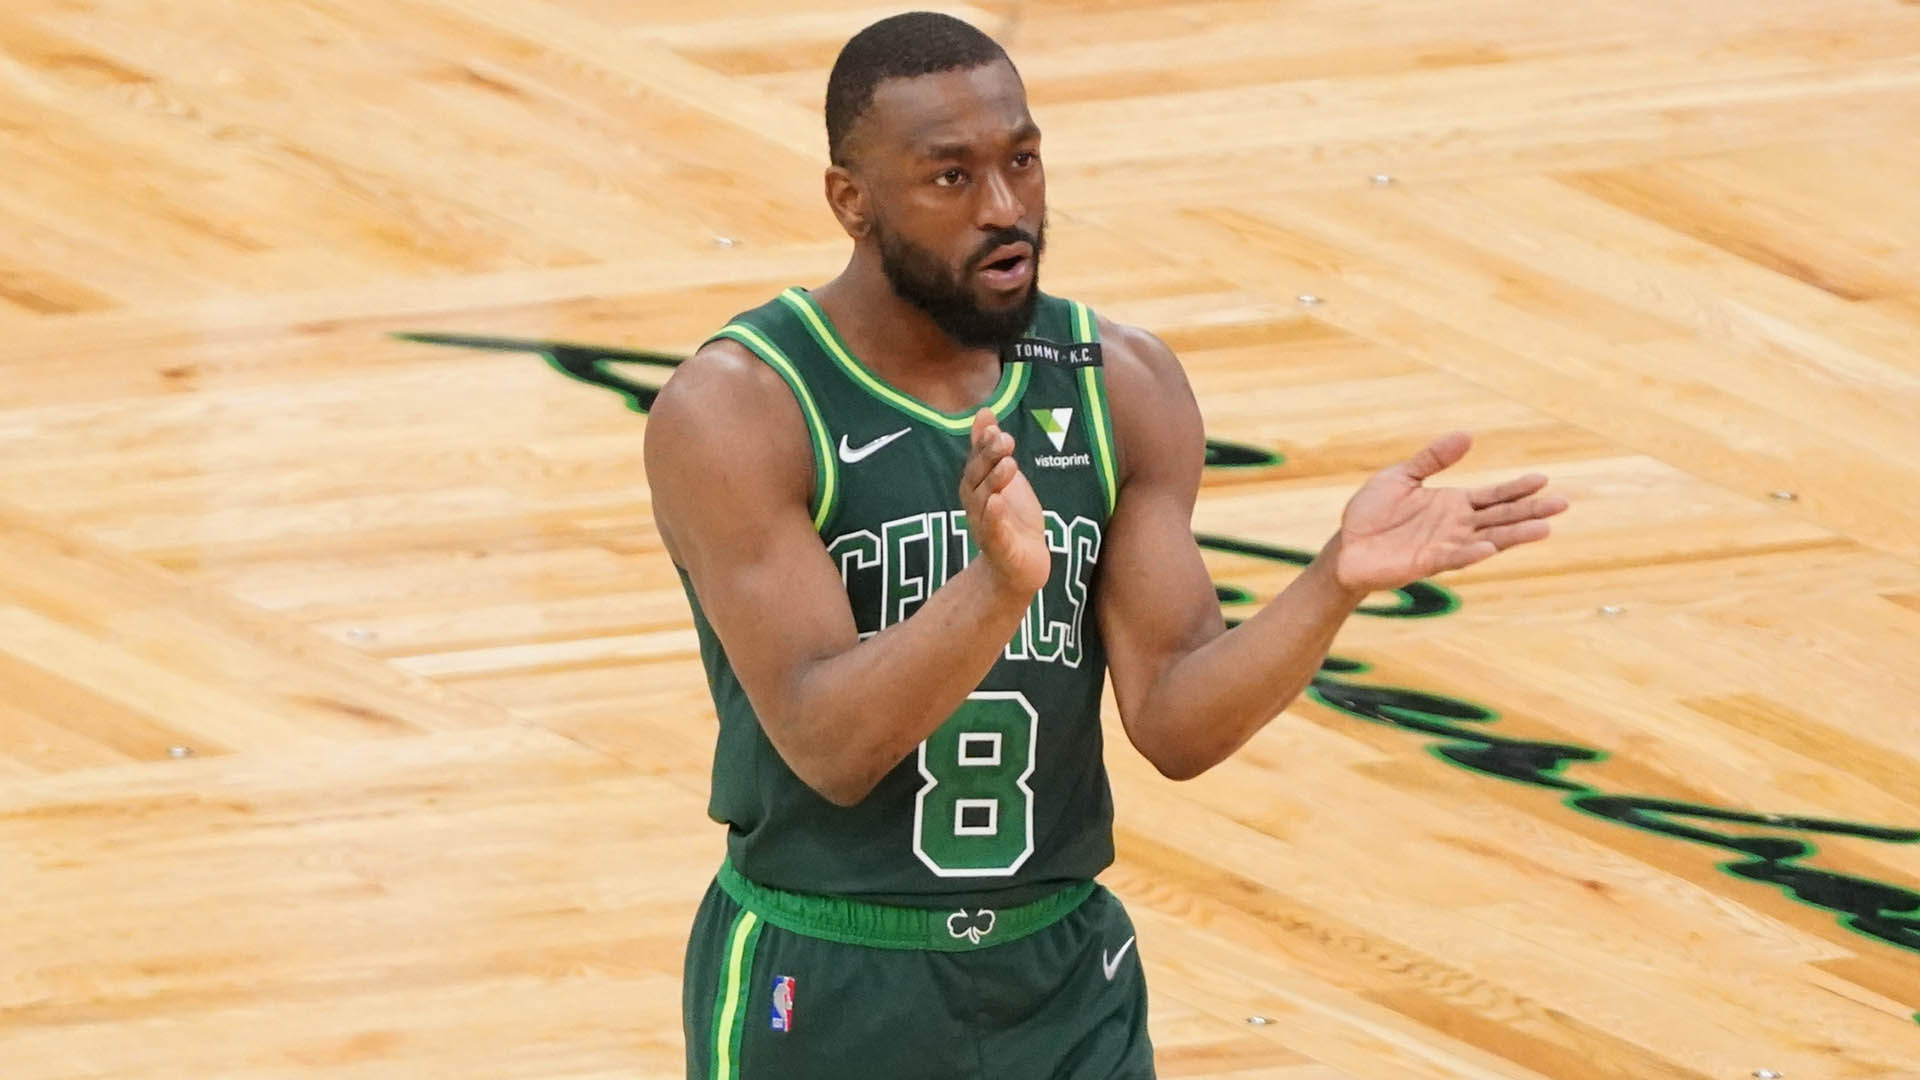 Reports: Kemba Walker to be bought out, sign with Knicks